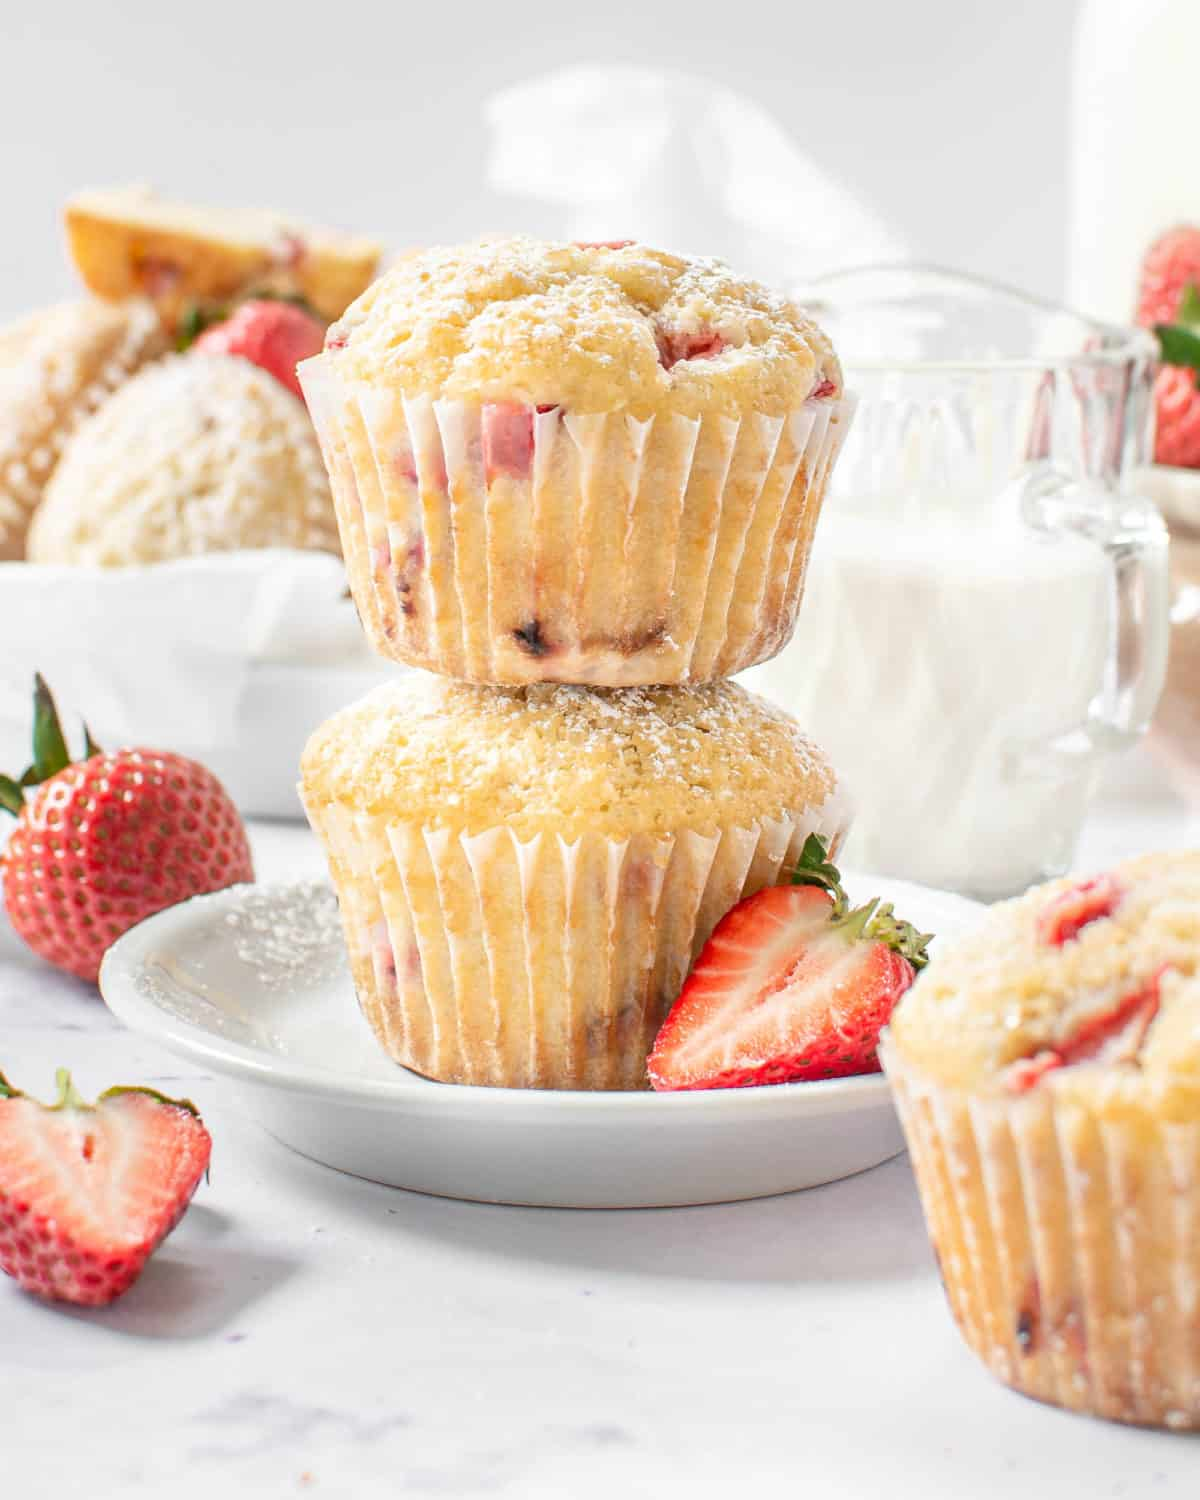 Two strawberry lemon muffins stack on each other.